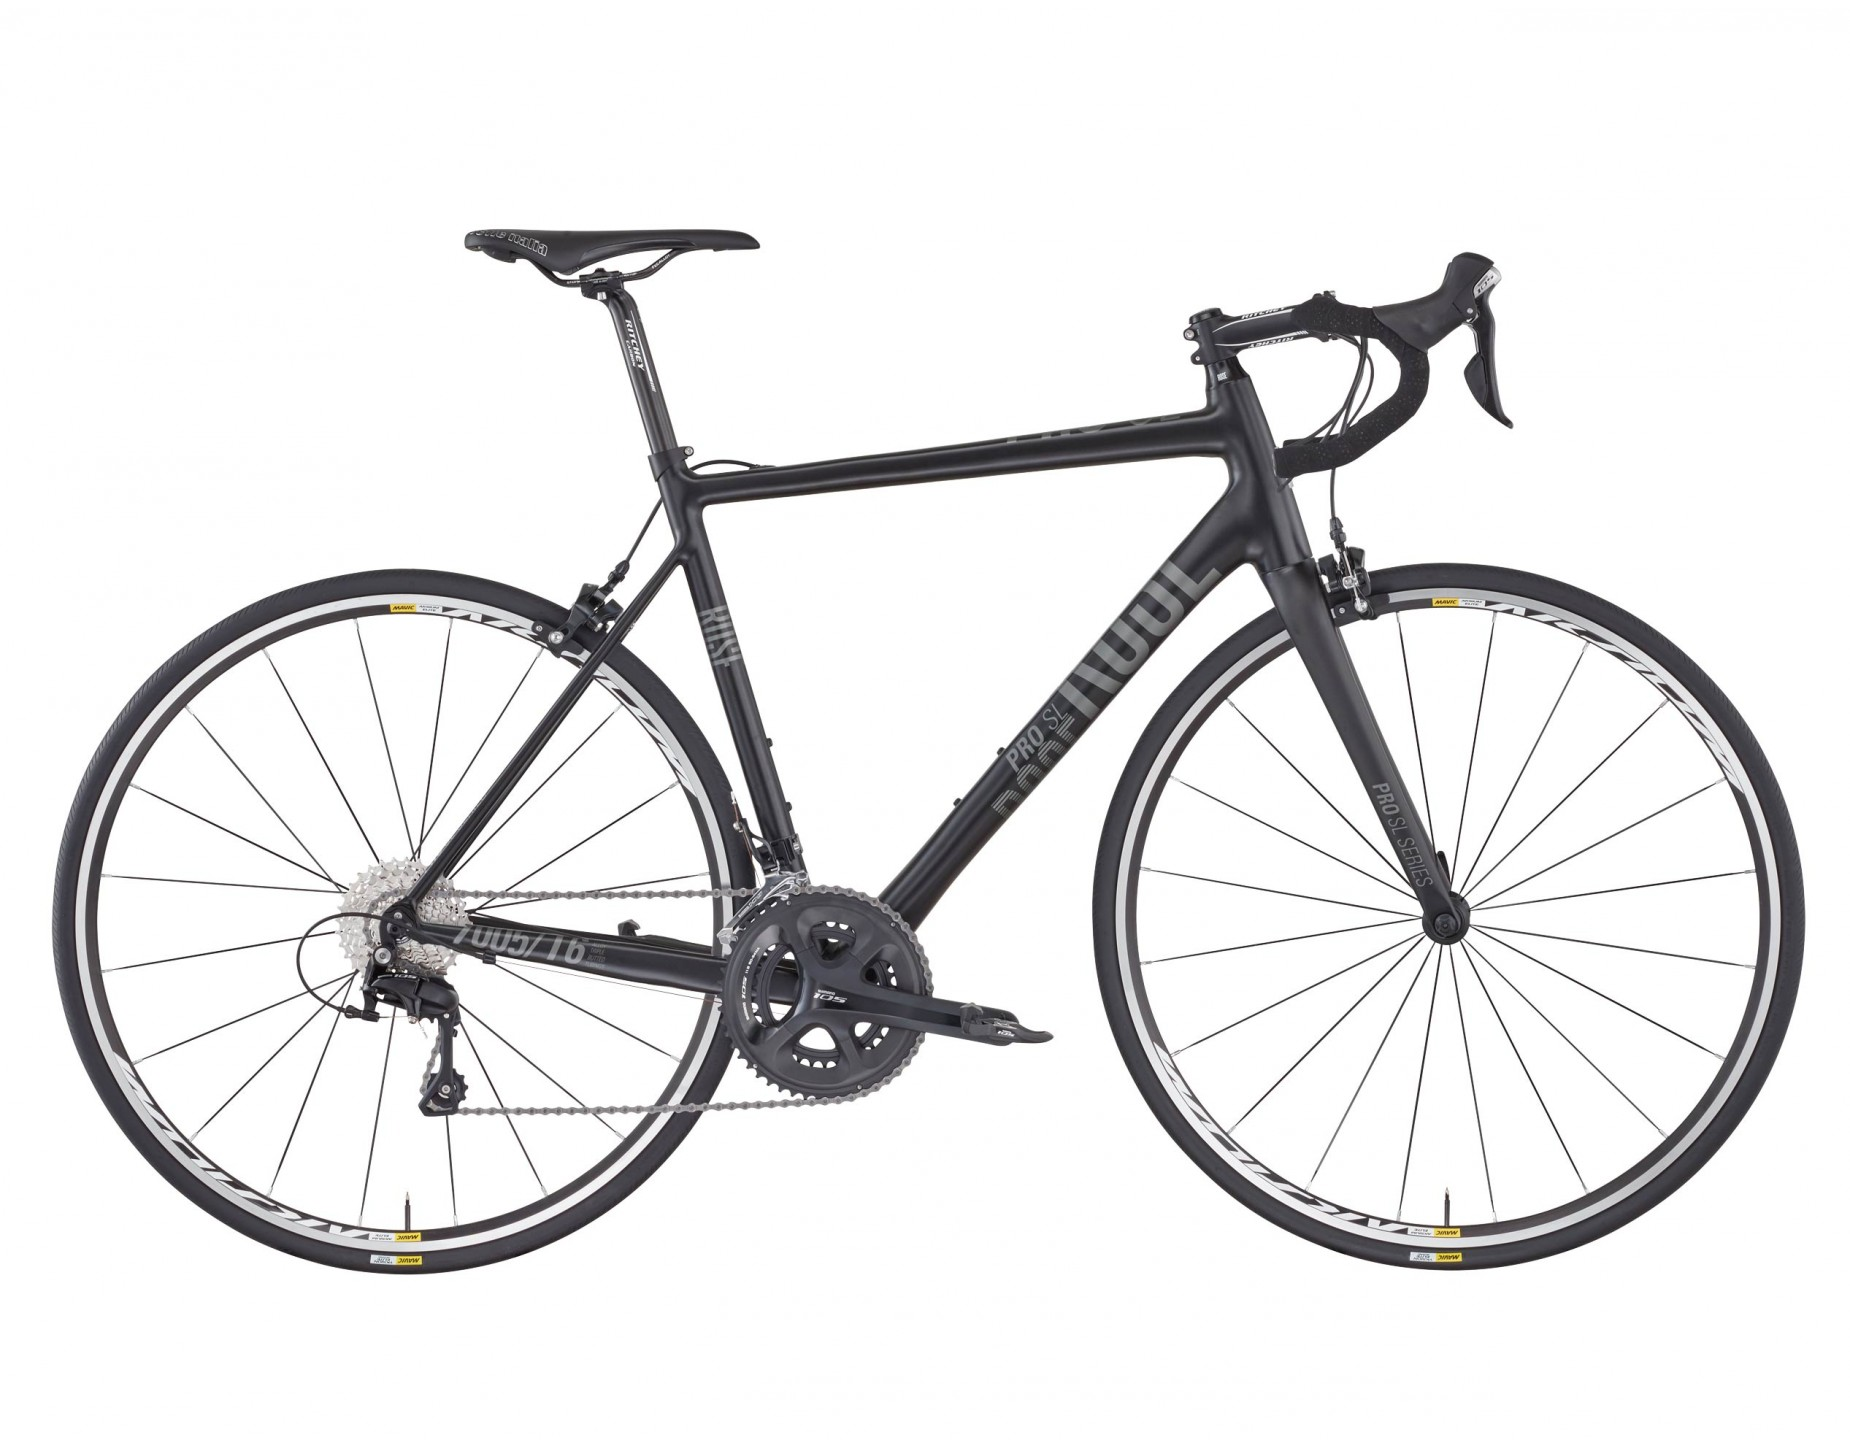 rose pro sl 2000 bike now offers at the cycling shop rose